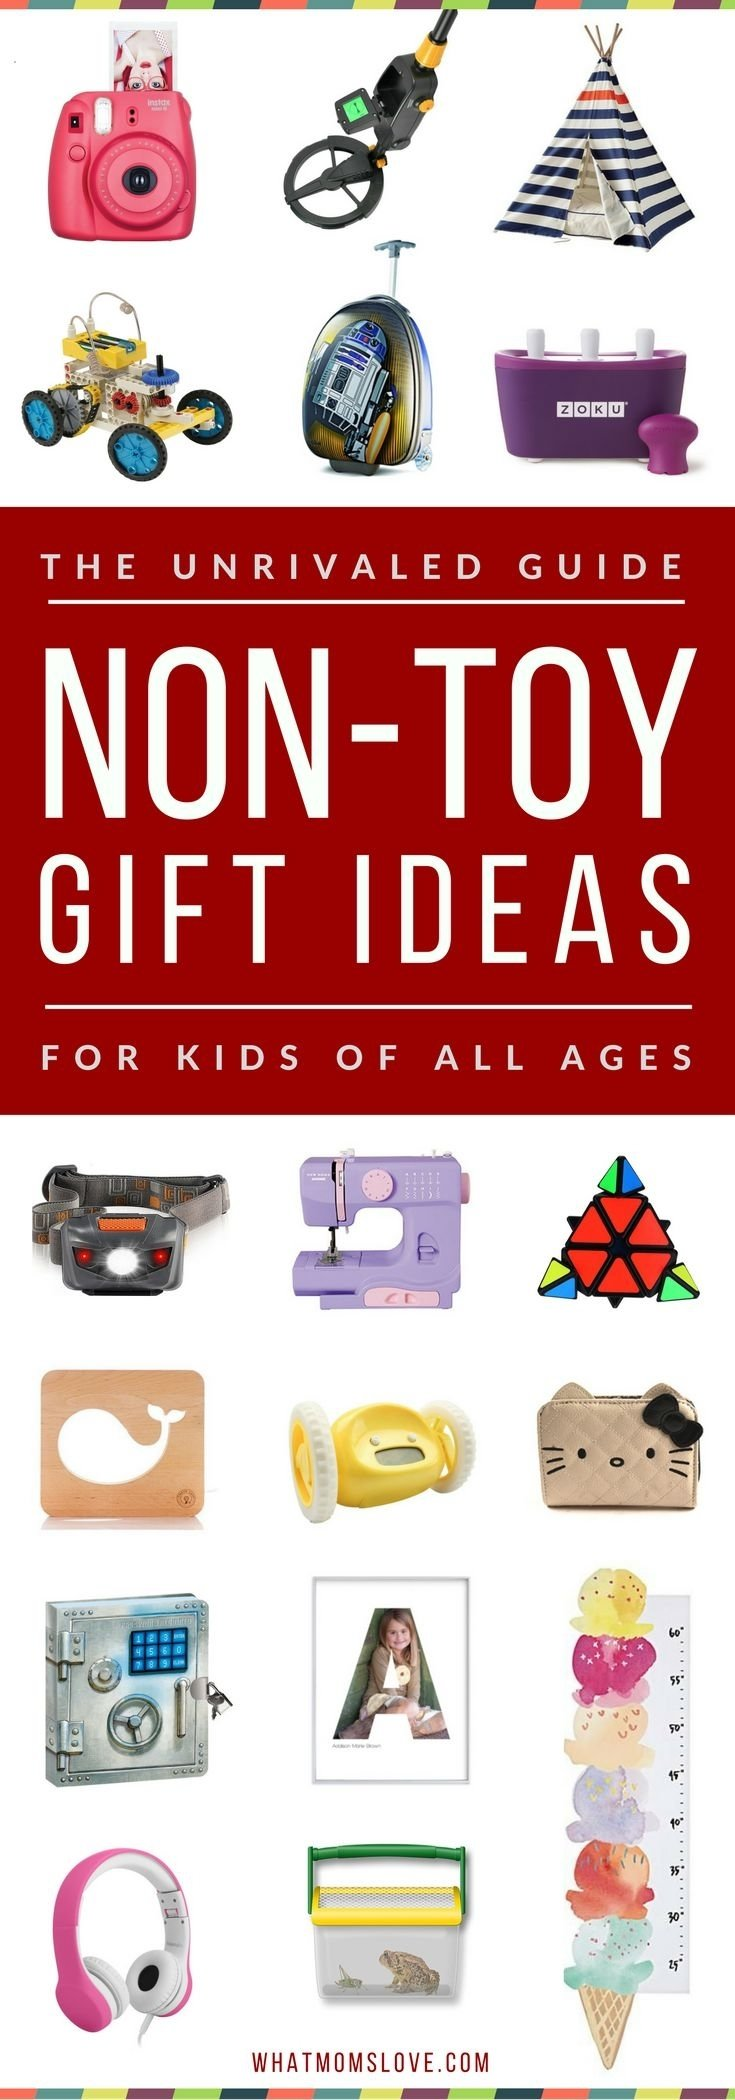 10 Gorgeous Christmas Gift Ideas For Toddlers 210 best gift ideas images on pinterest christmas gift ideas gift 2 2021